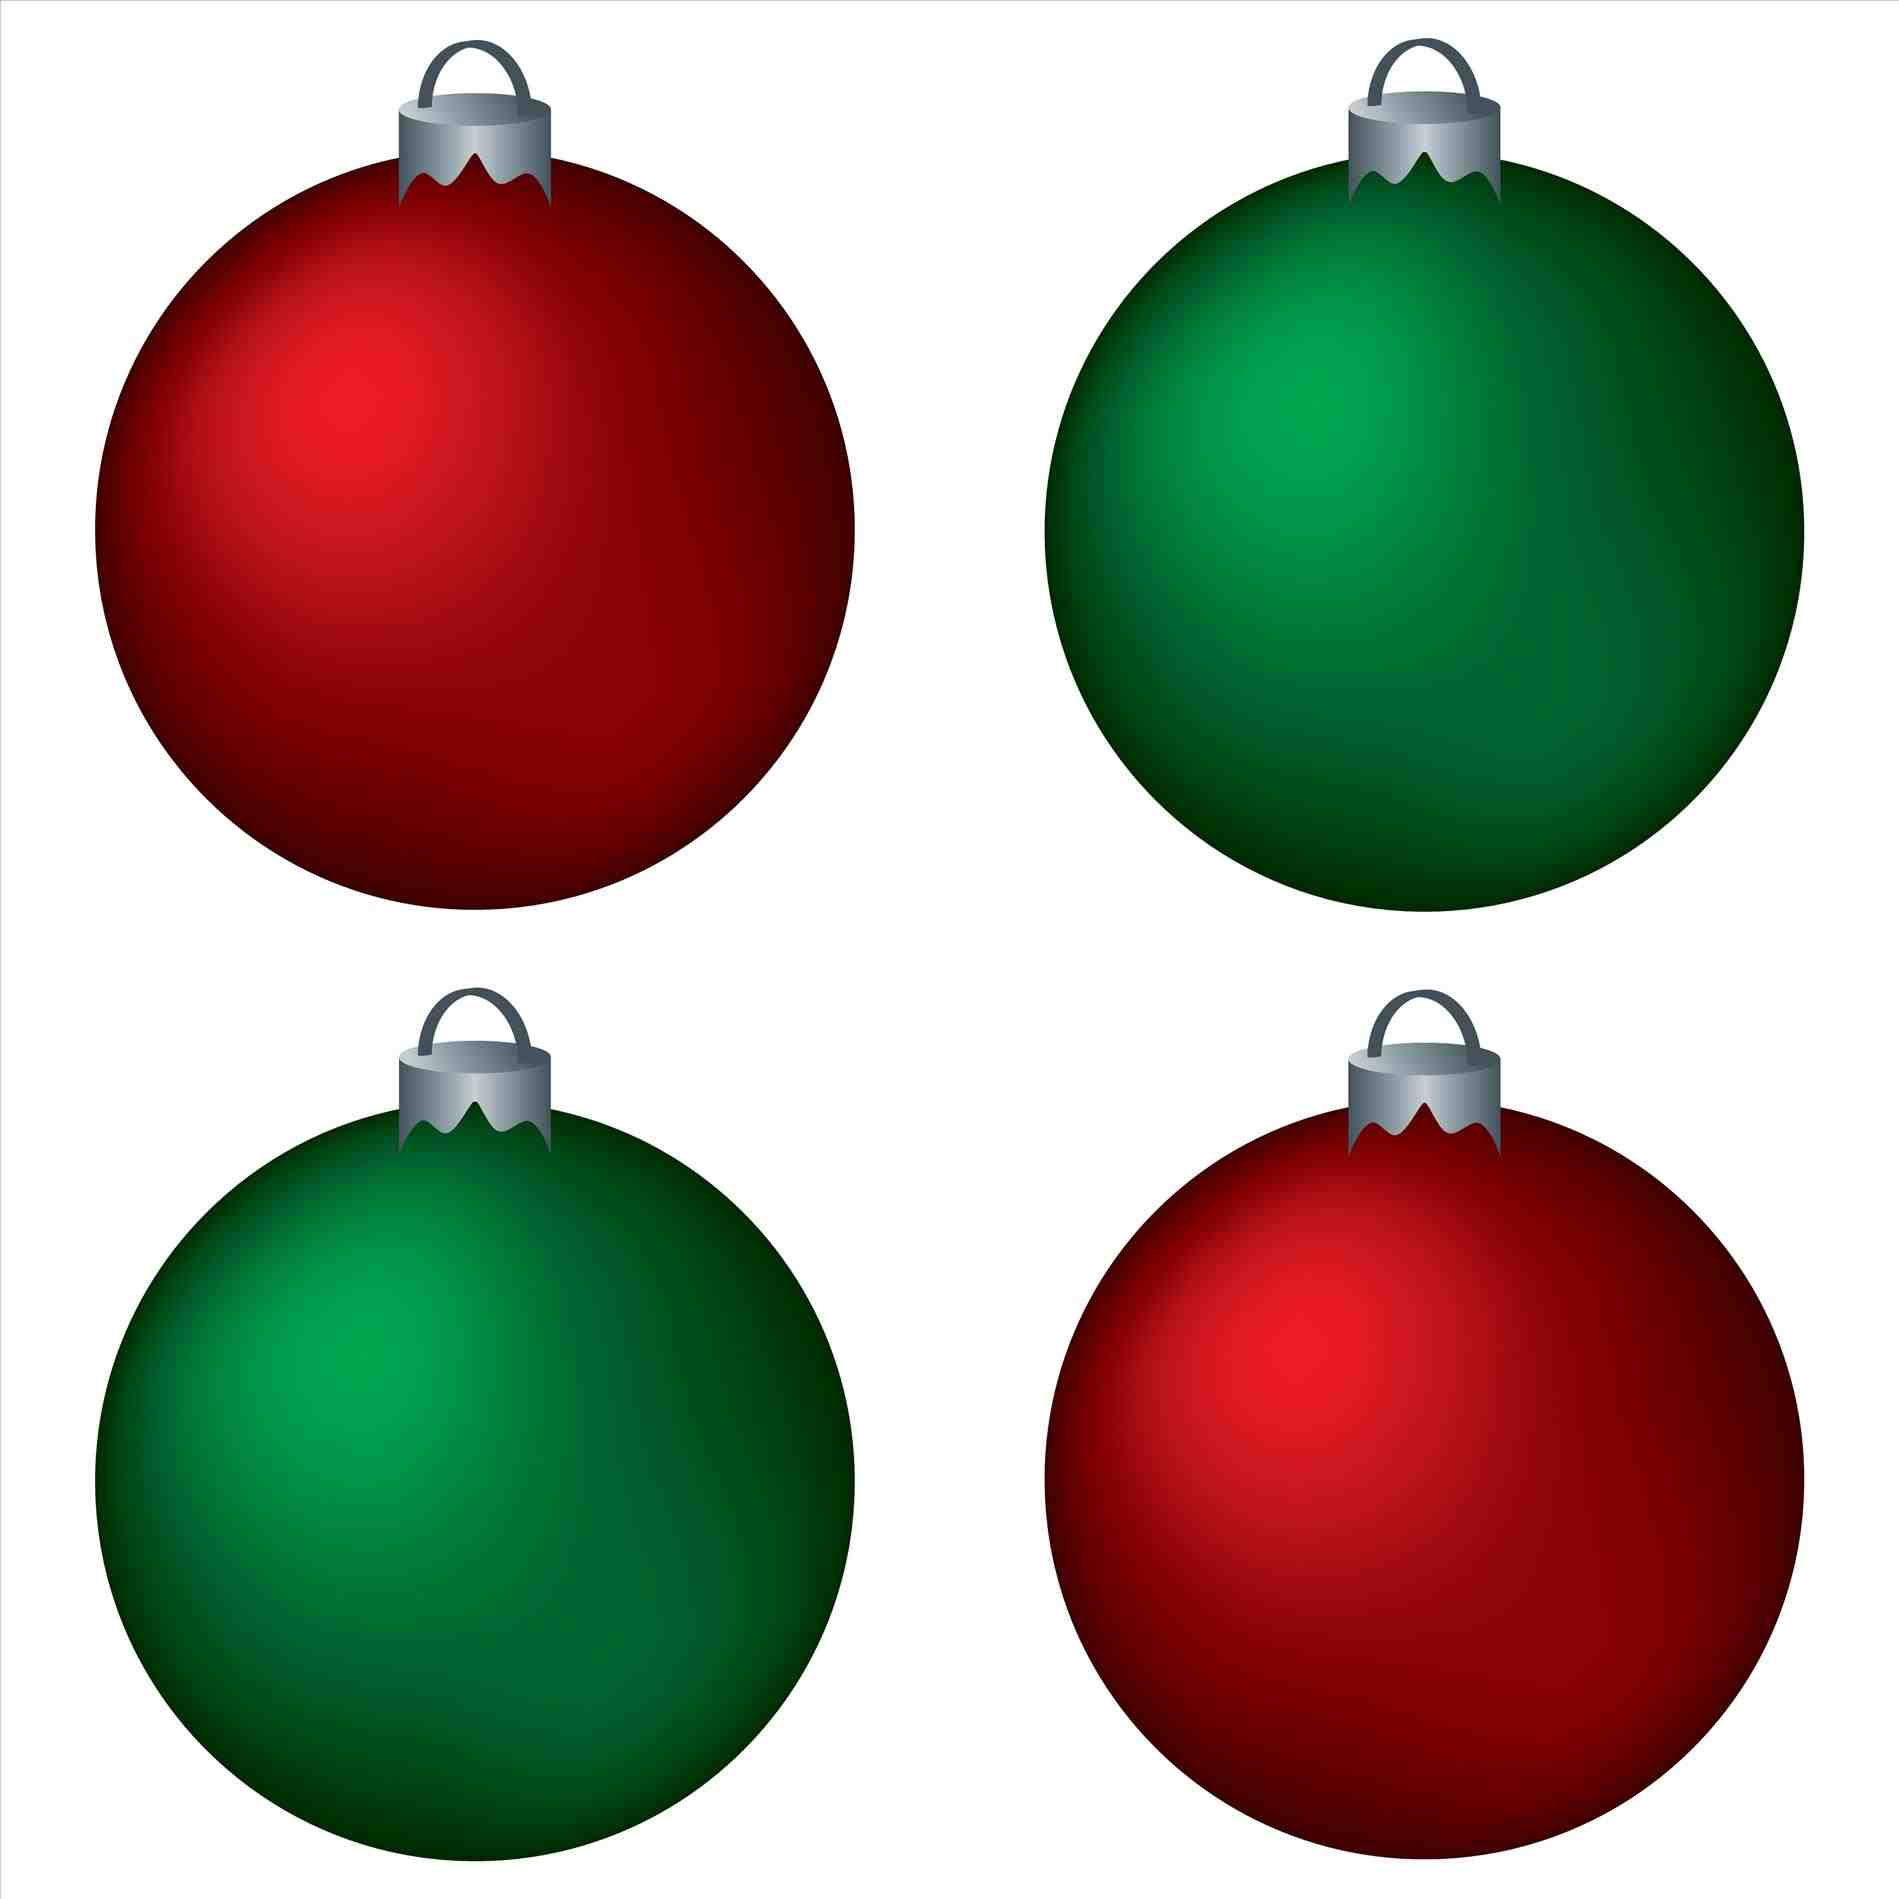 1899x1899 Moving Christmas Ornaments cheminee.website